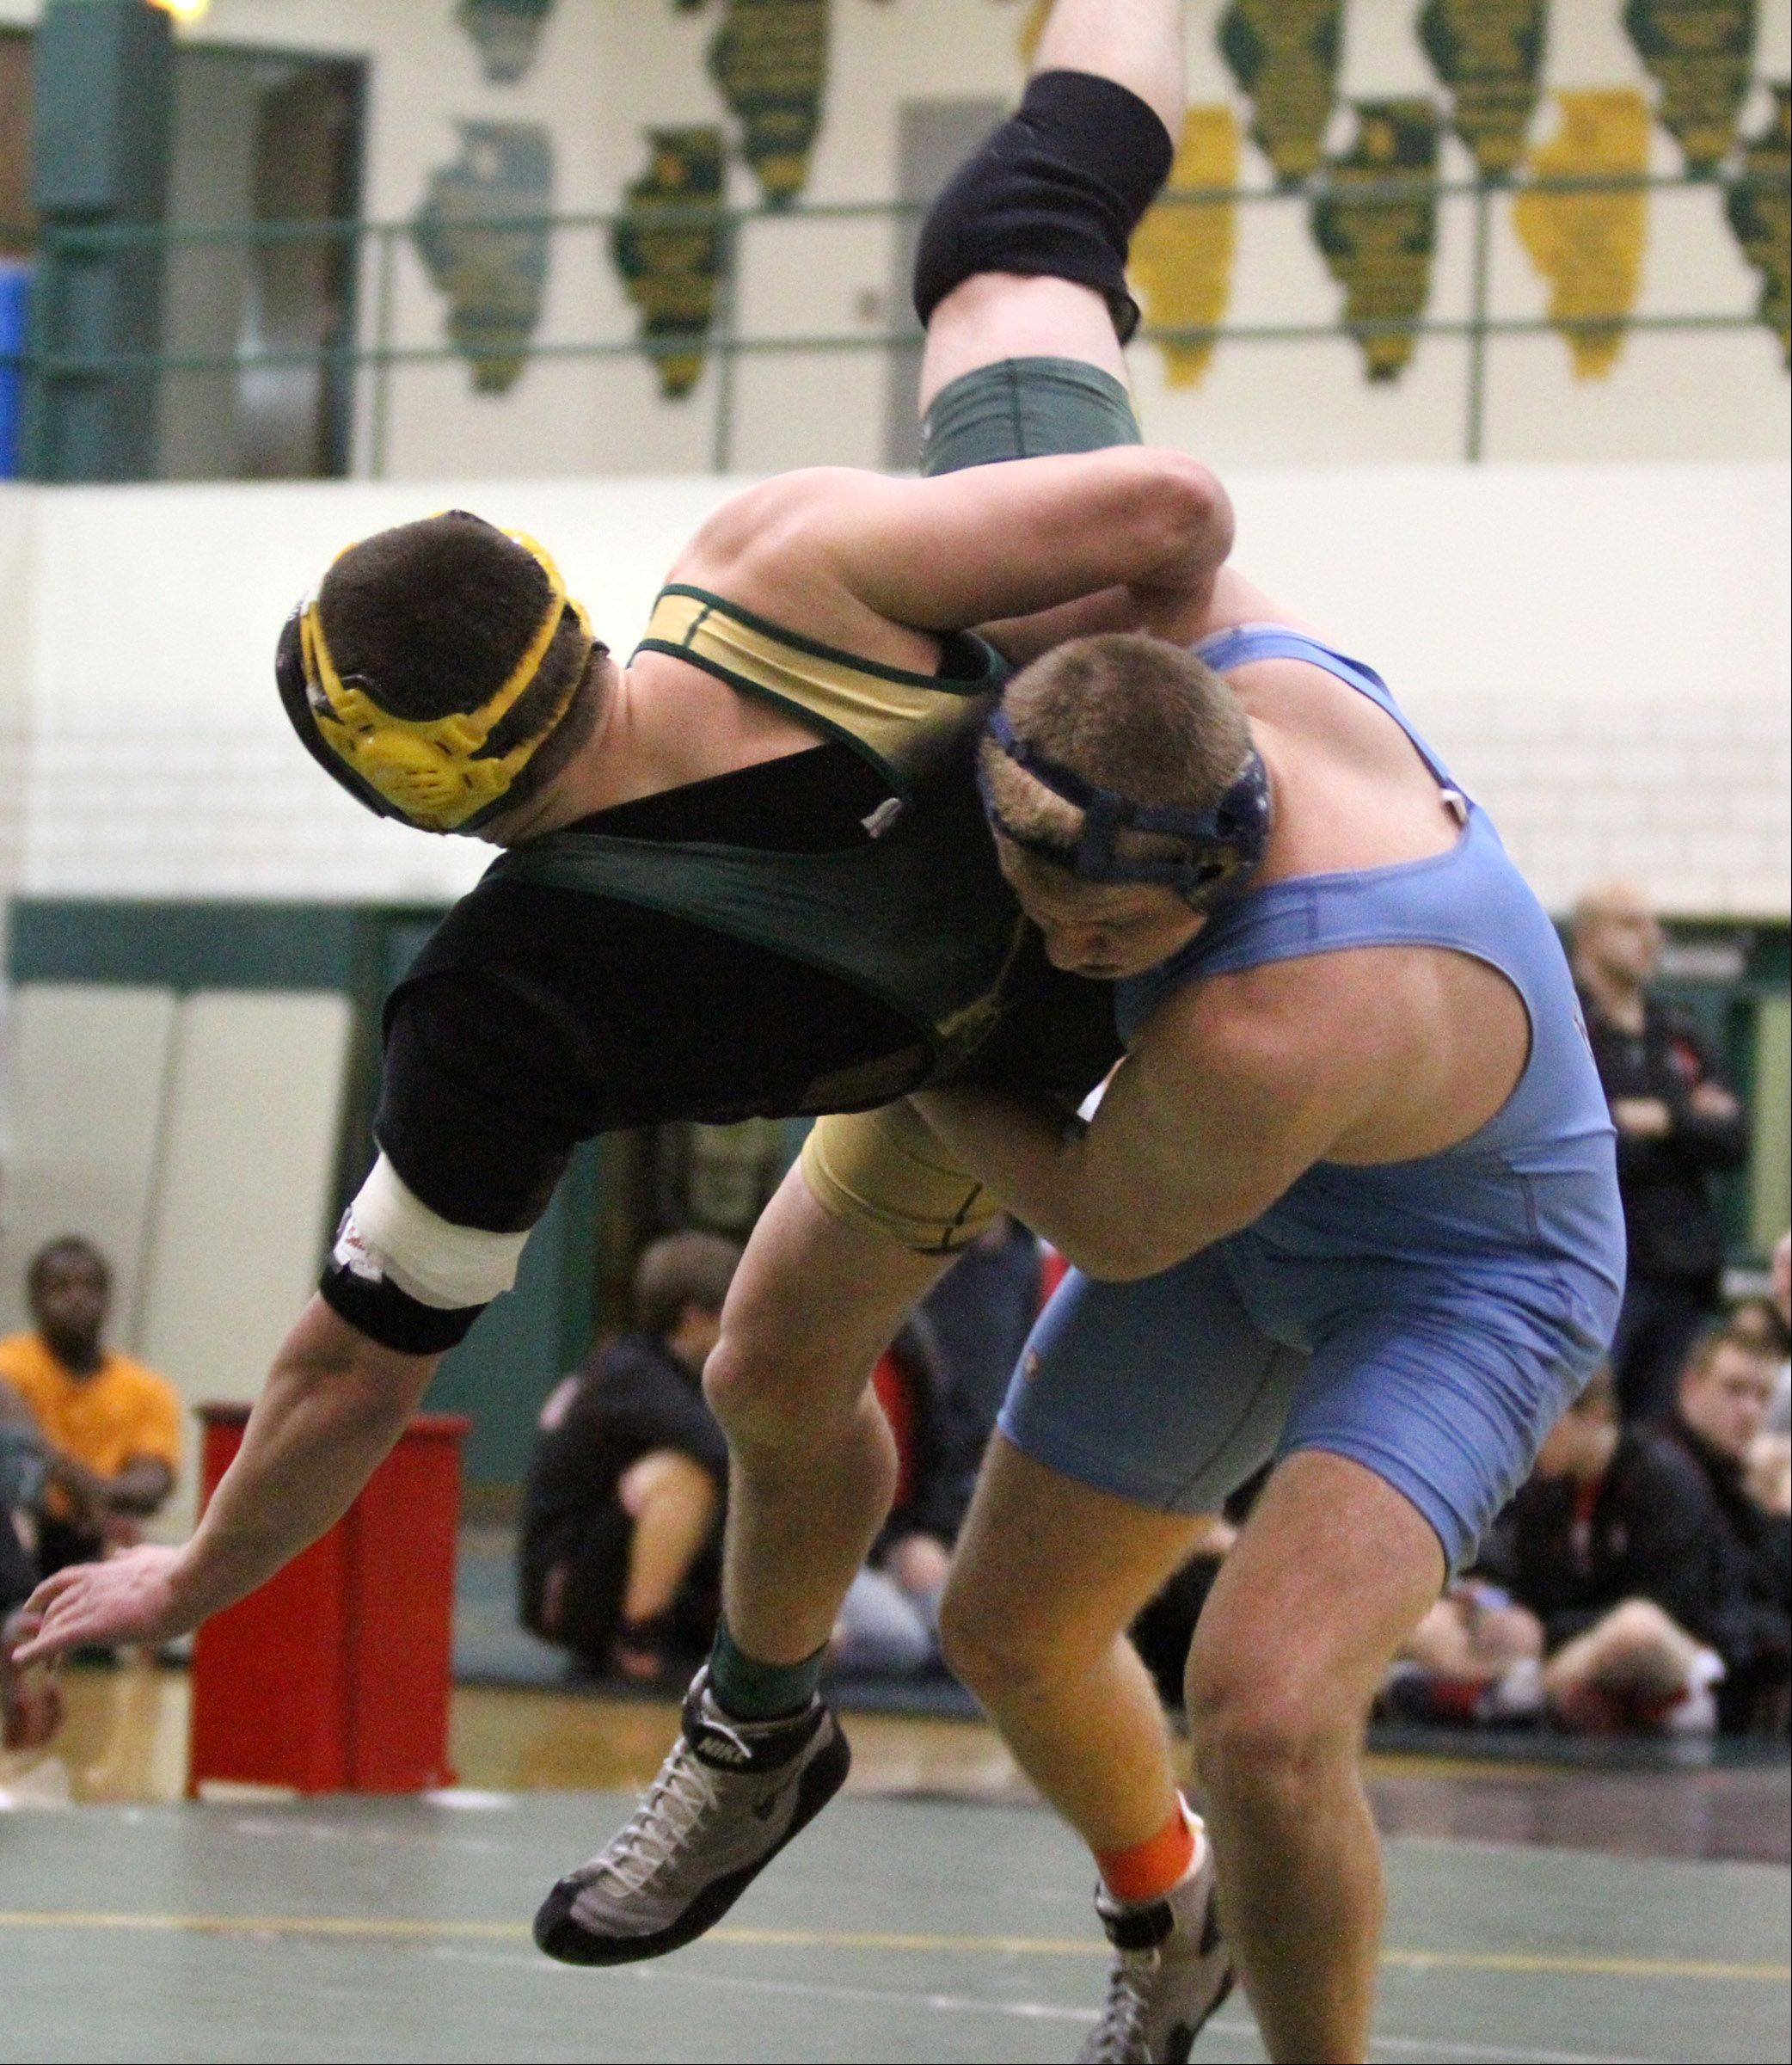 Prospect's Frank Walter throws Elk Grove's Dan Egan during the recent MSL championships. Walter competes at 220 in this weekend's Barrington sectional while Egan, a regional champ, is in action at Maine East.